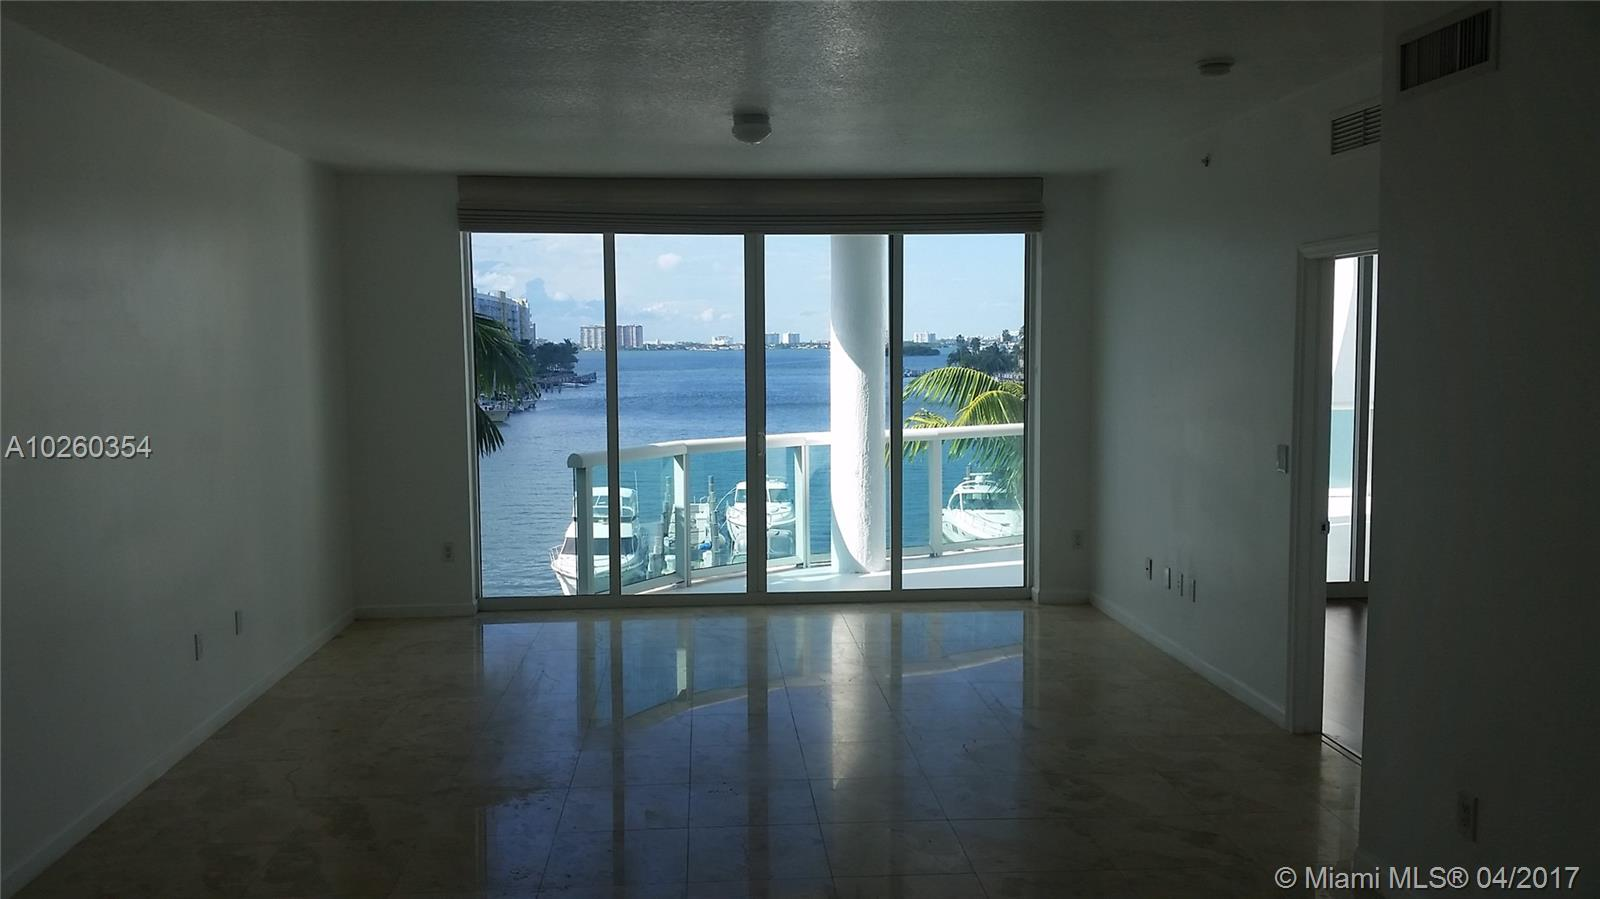 7914 Harbor Island Dr #305, North Bay Village FL, 33141